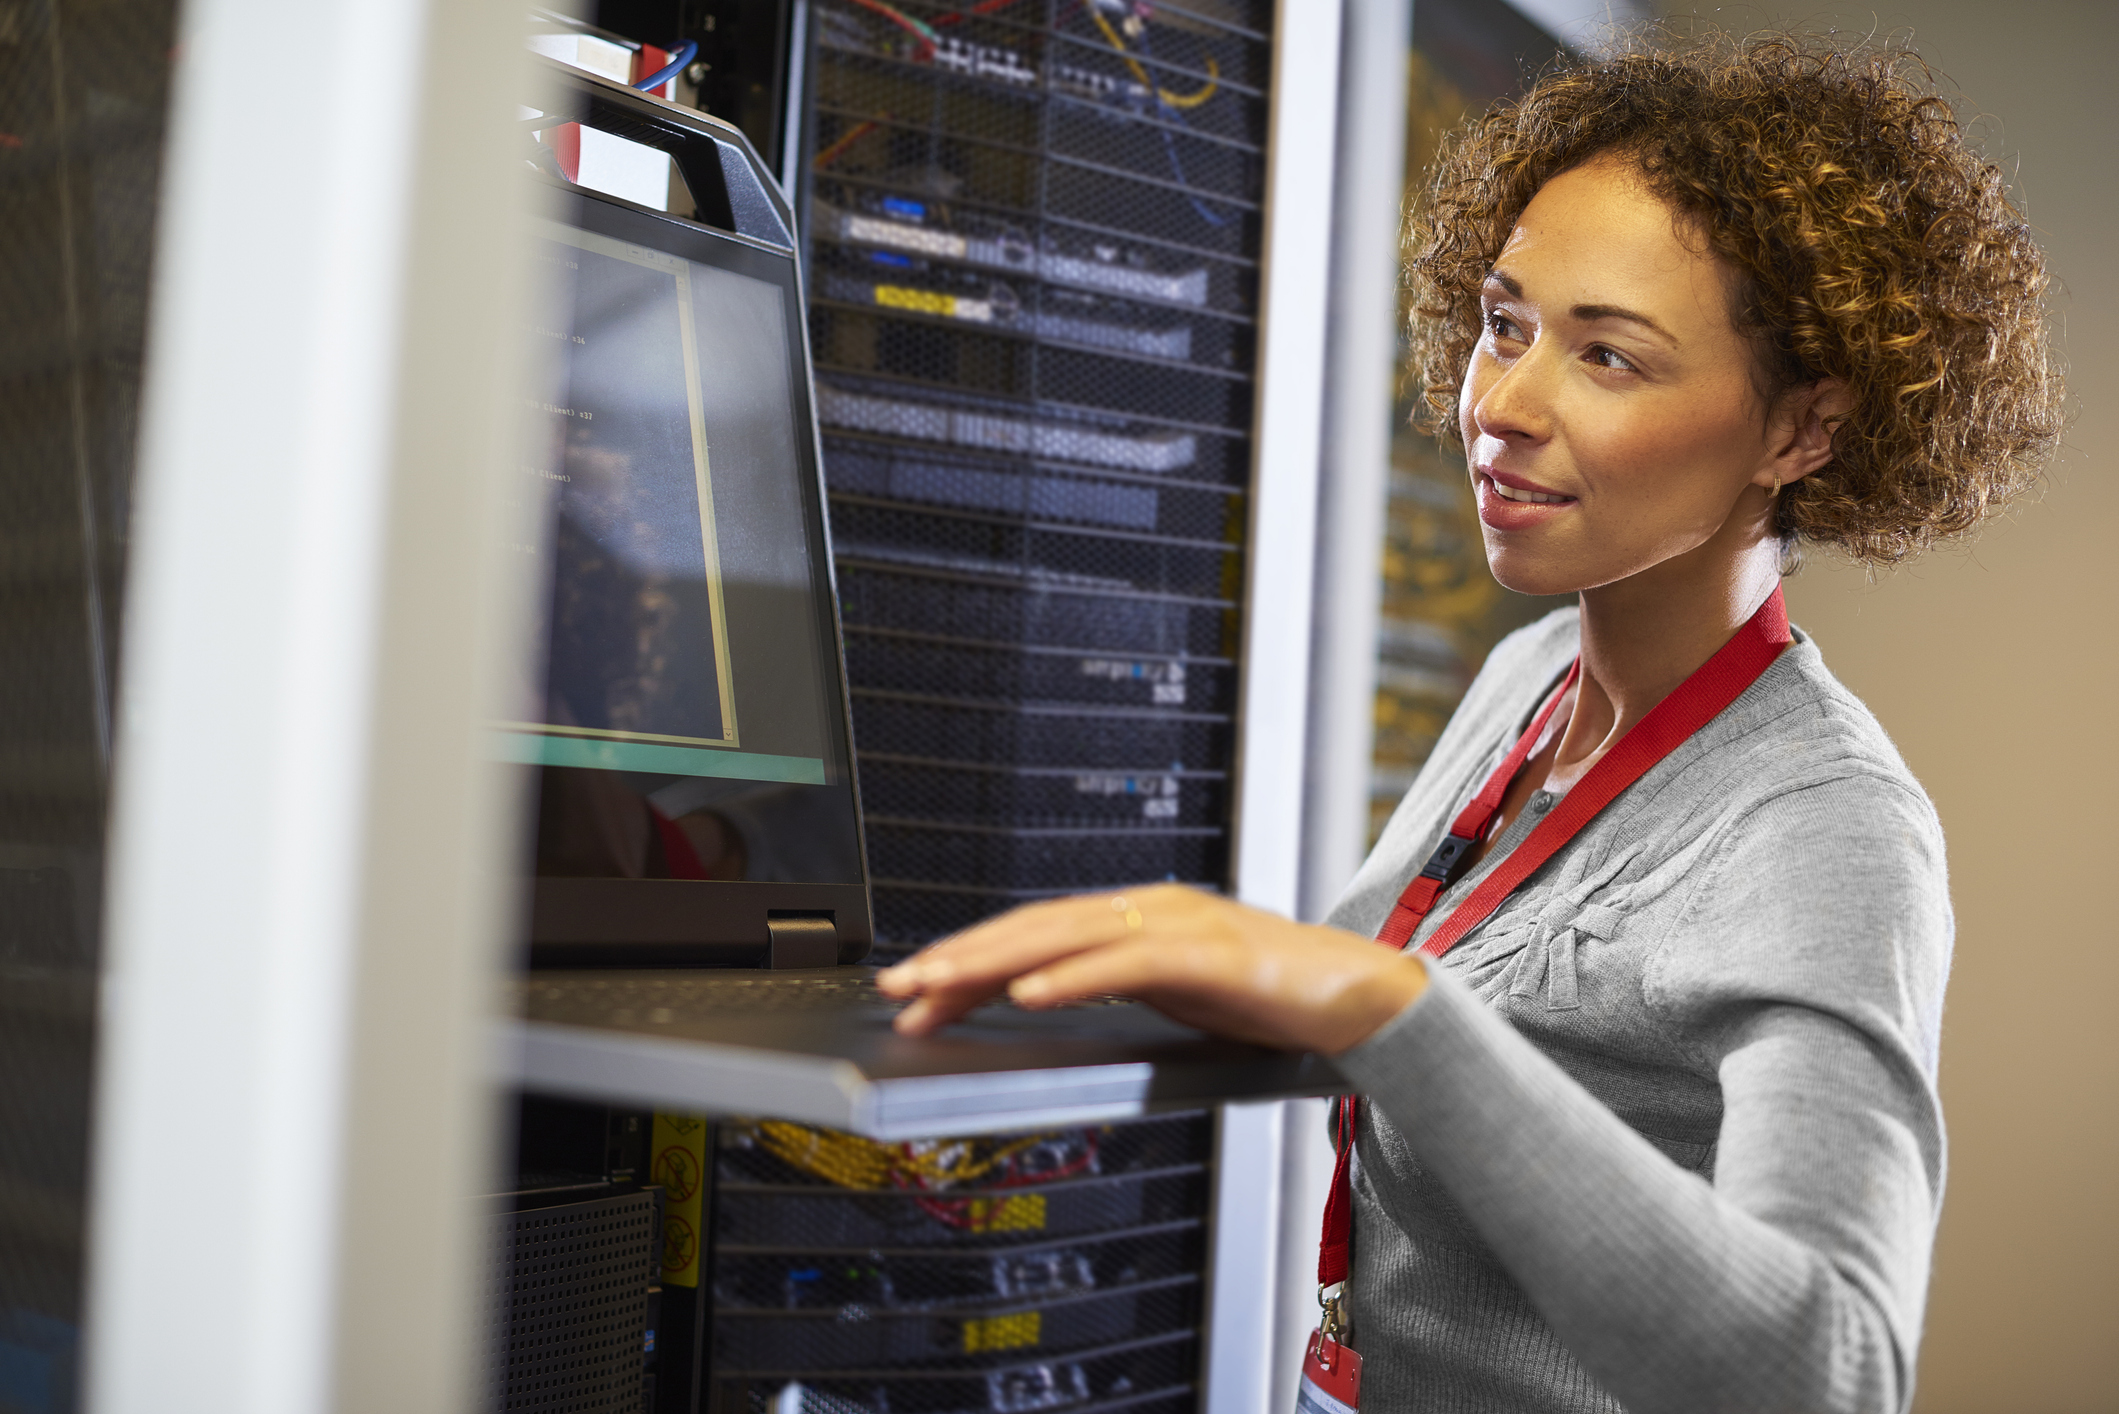 Female IT Professional in a Server Room